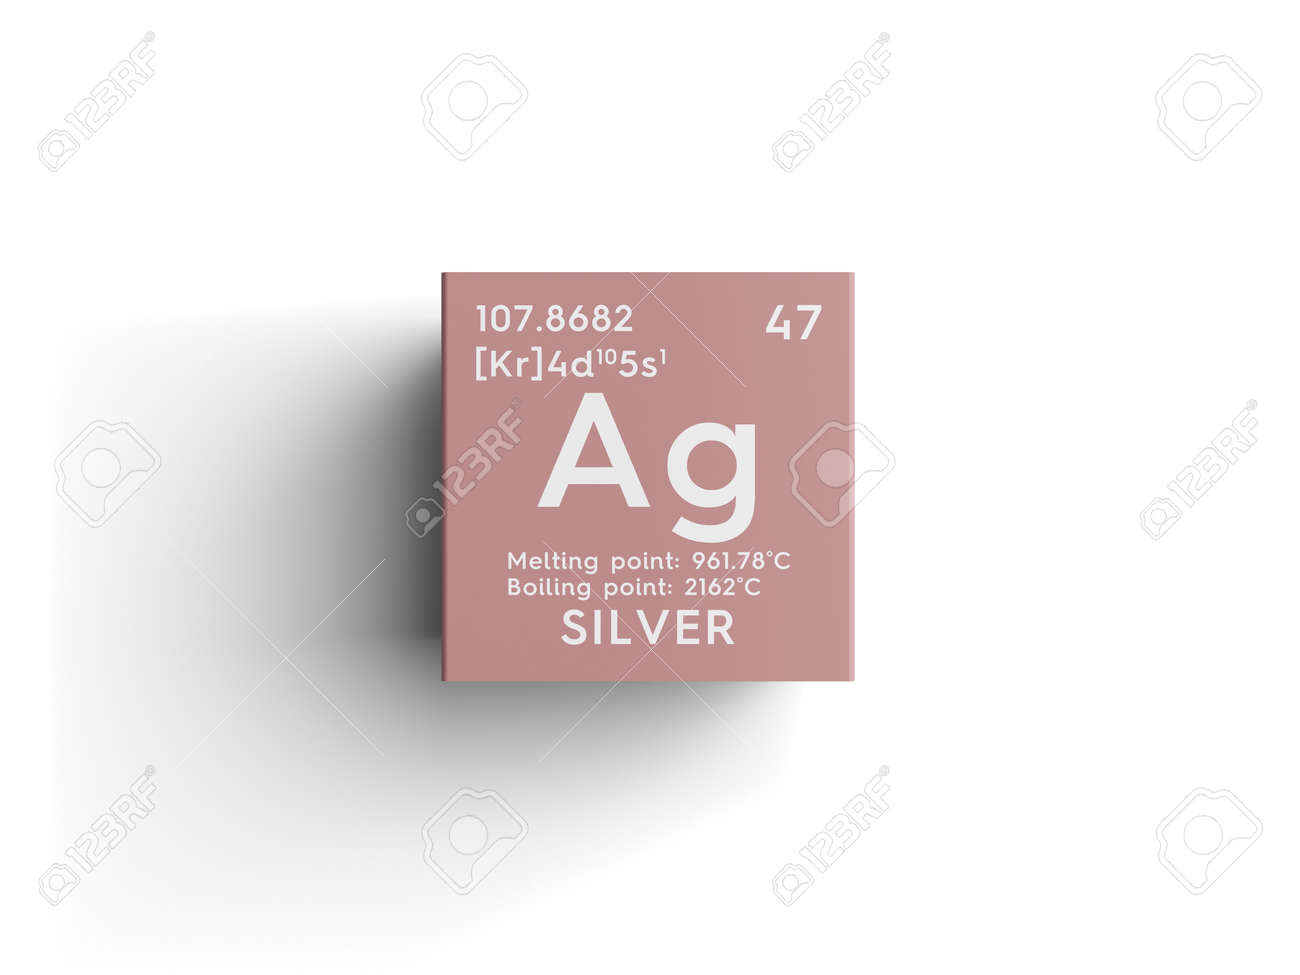 Silver transition metals chemical element of mendeleevs silver transition metals chemical element of mendeleevs periodic table silver in square cube gamestrikefo Image collections